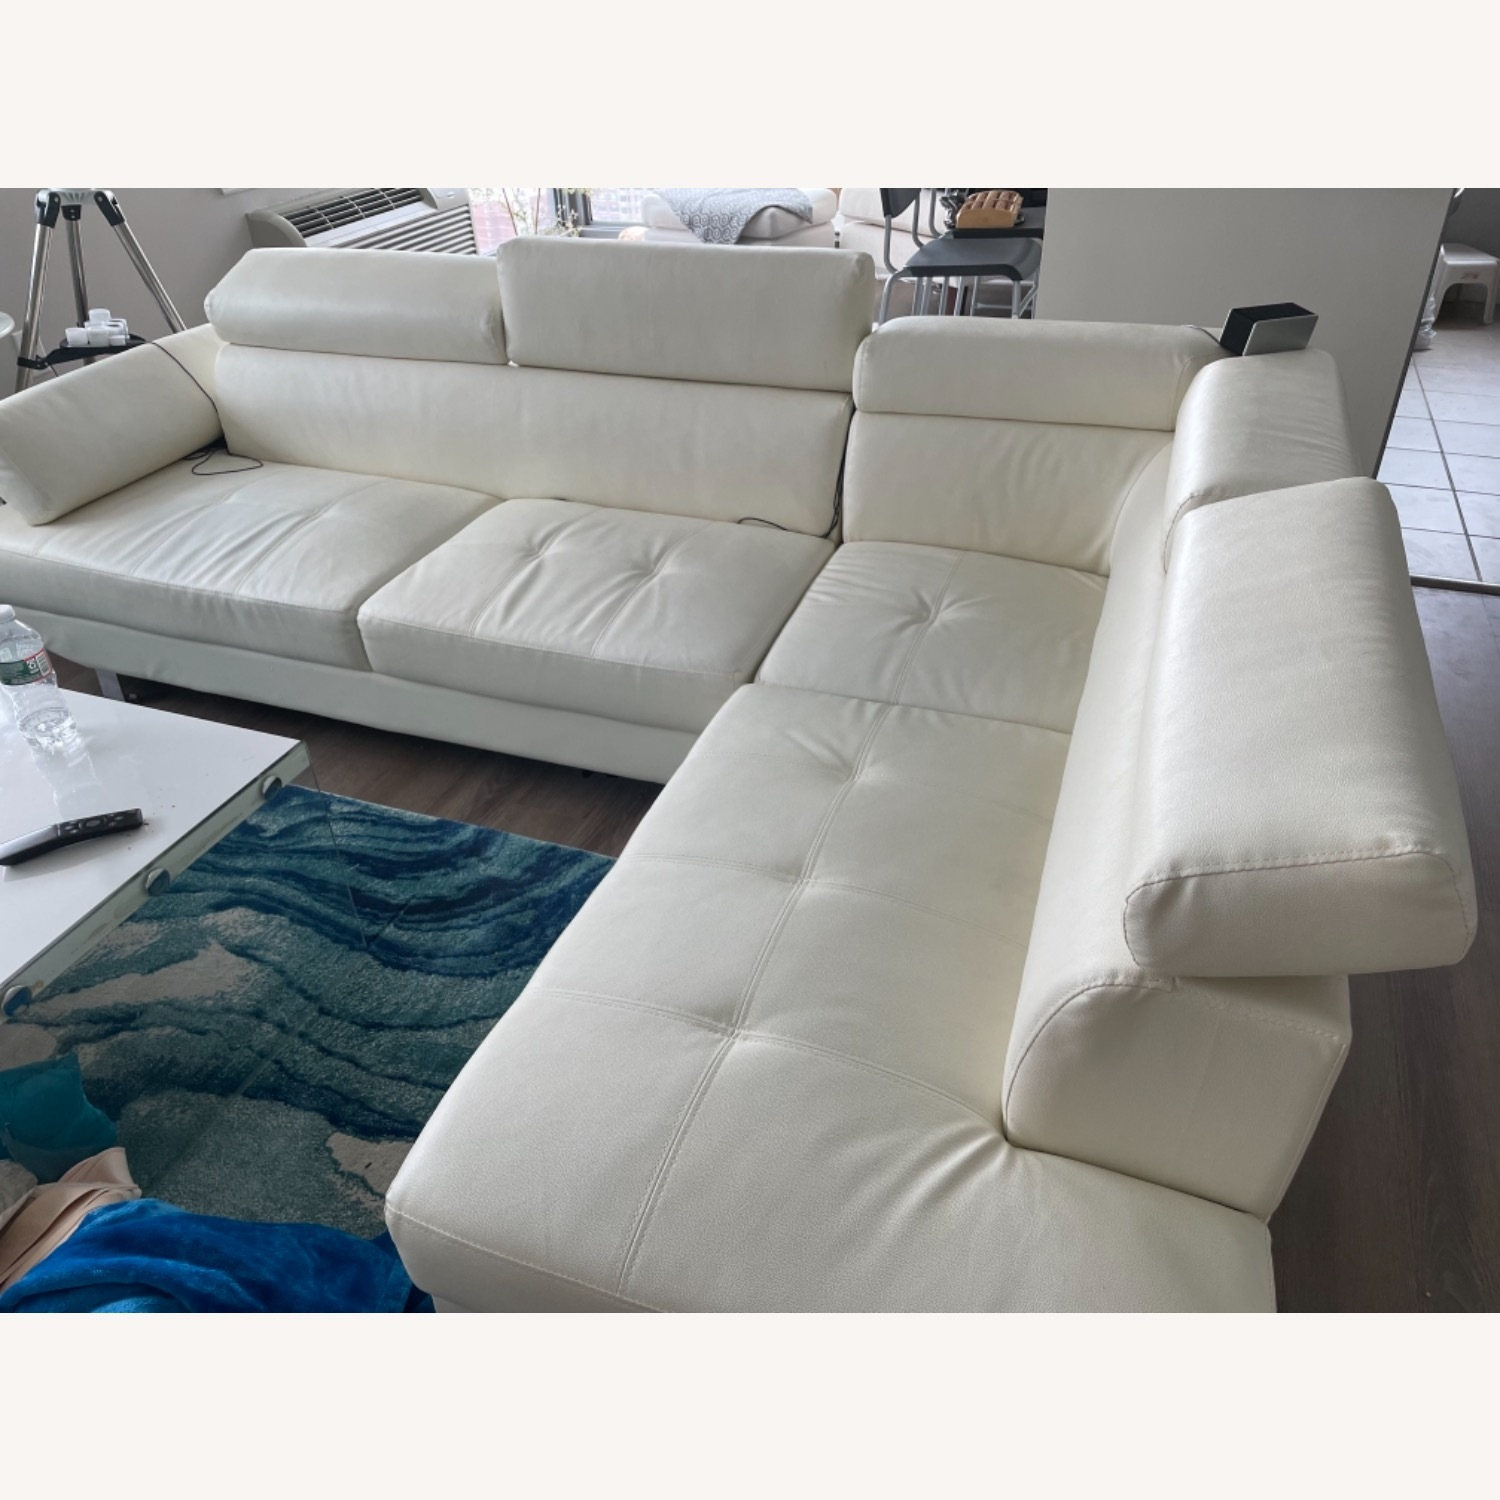 Wayfair White Sectional Sofa - image-3